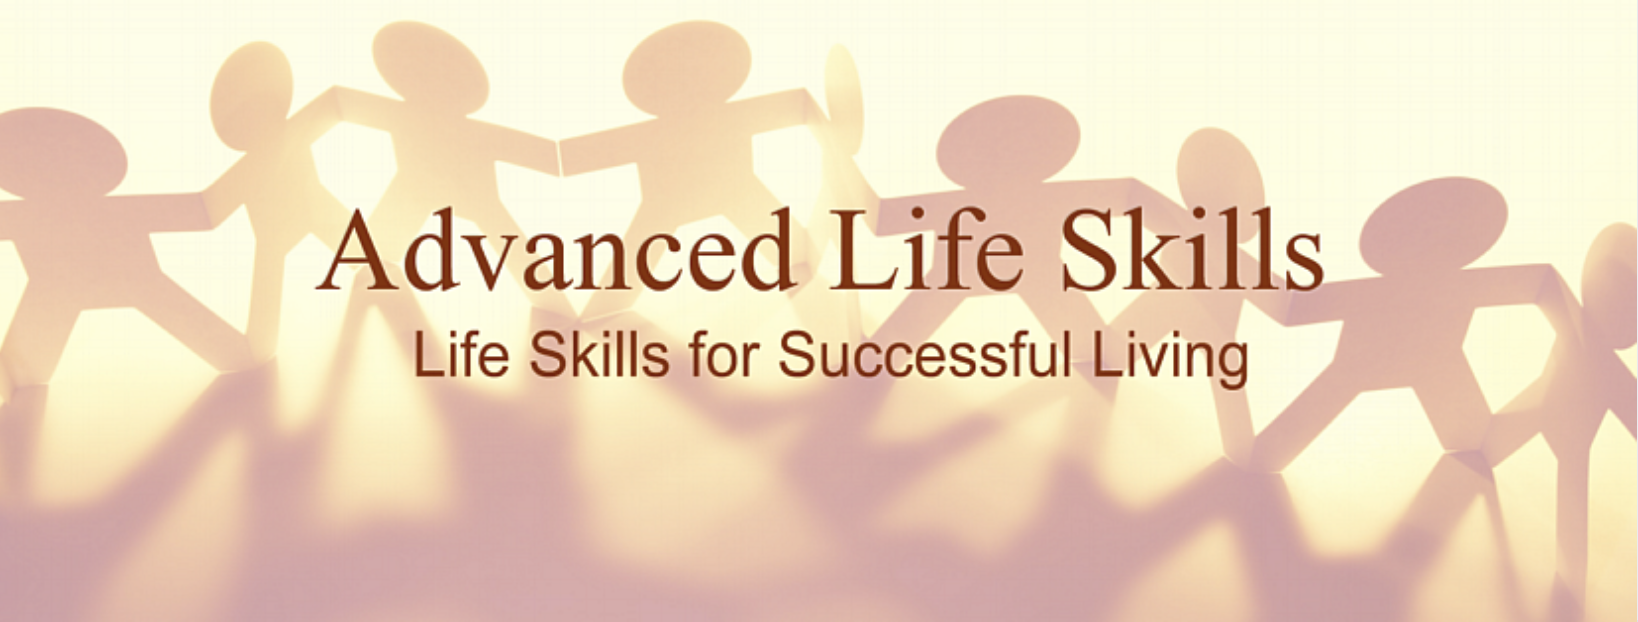 Advanced Life Skills Facebook Page Image